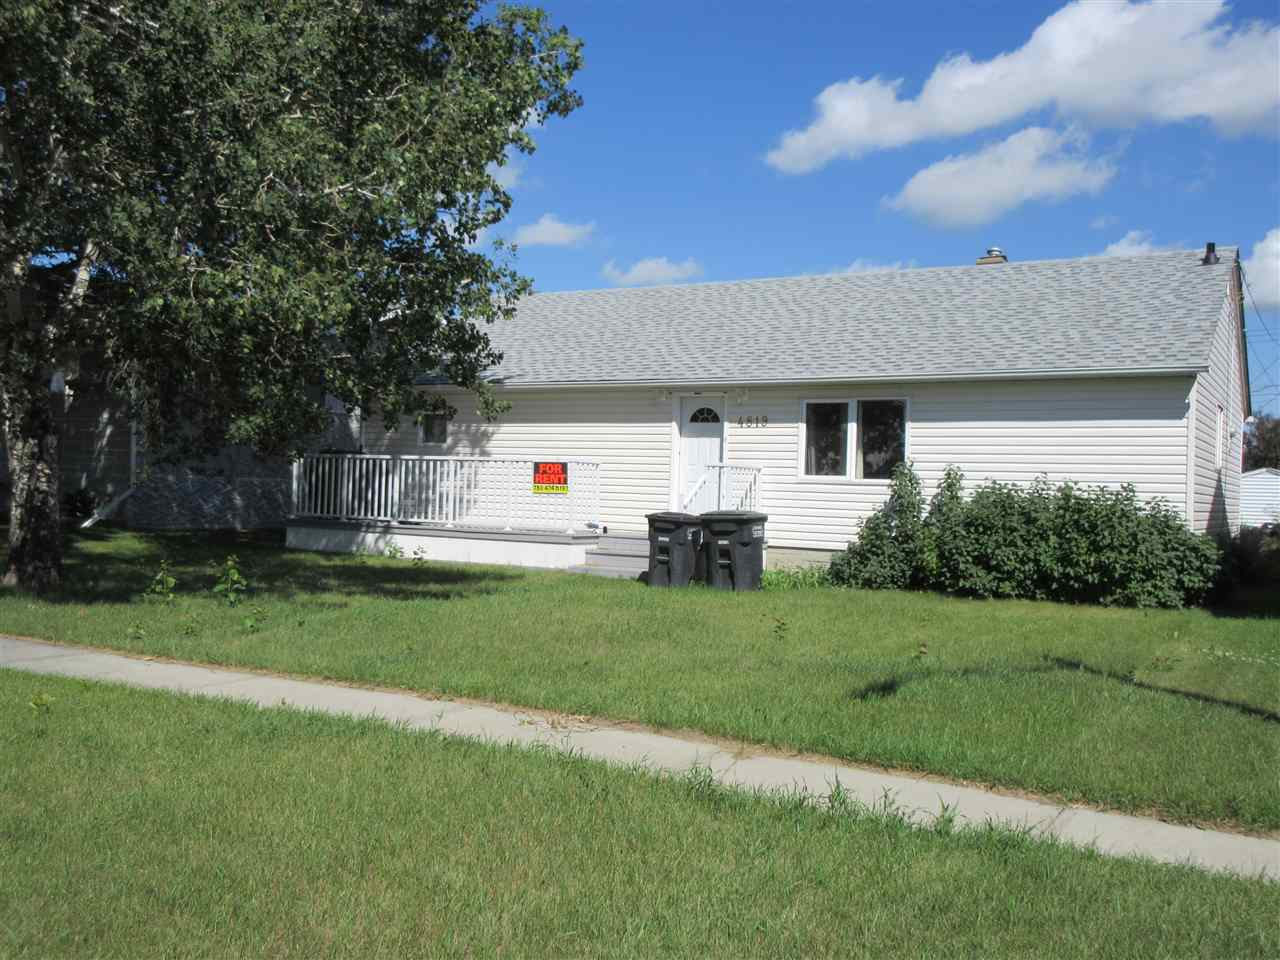 Main Photo: 4819 52 Street: Redwater House for sale : MLS®# E4121891